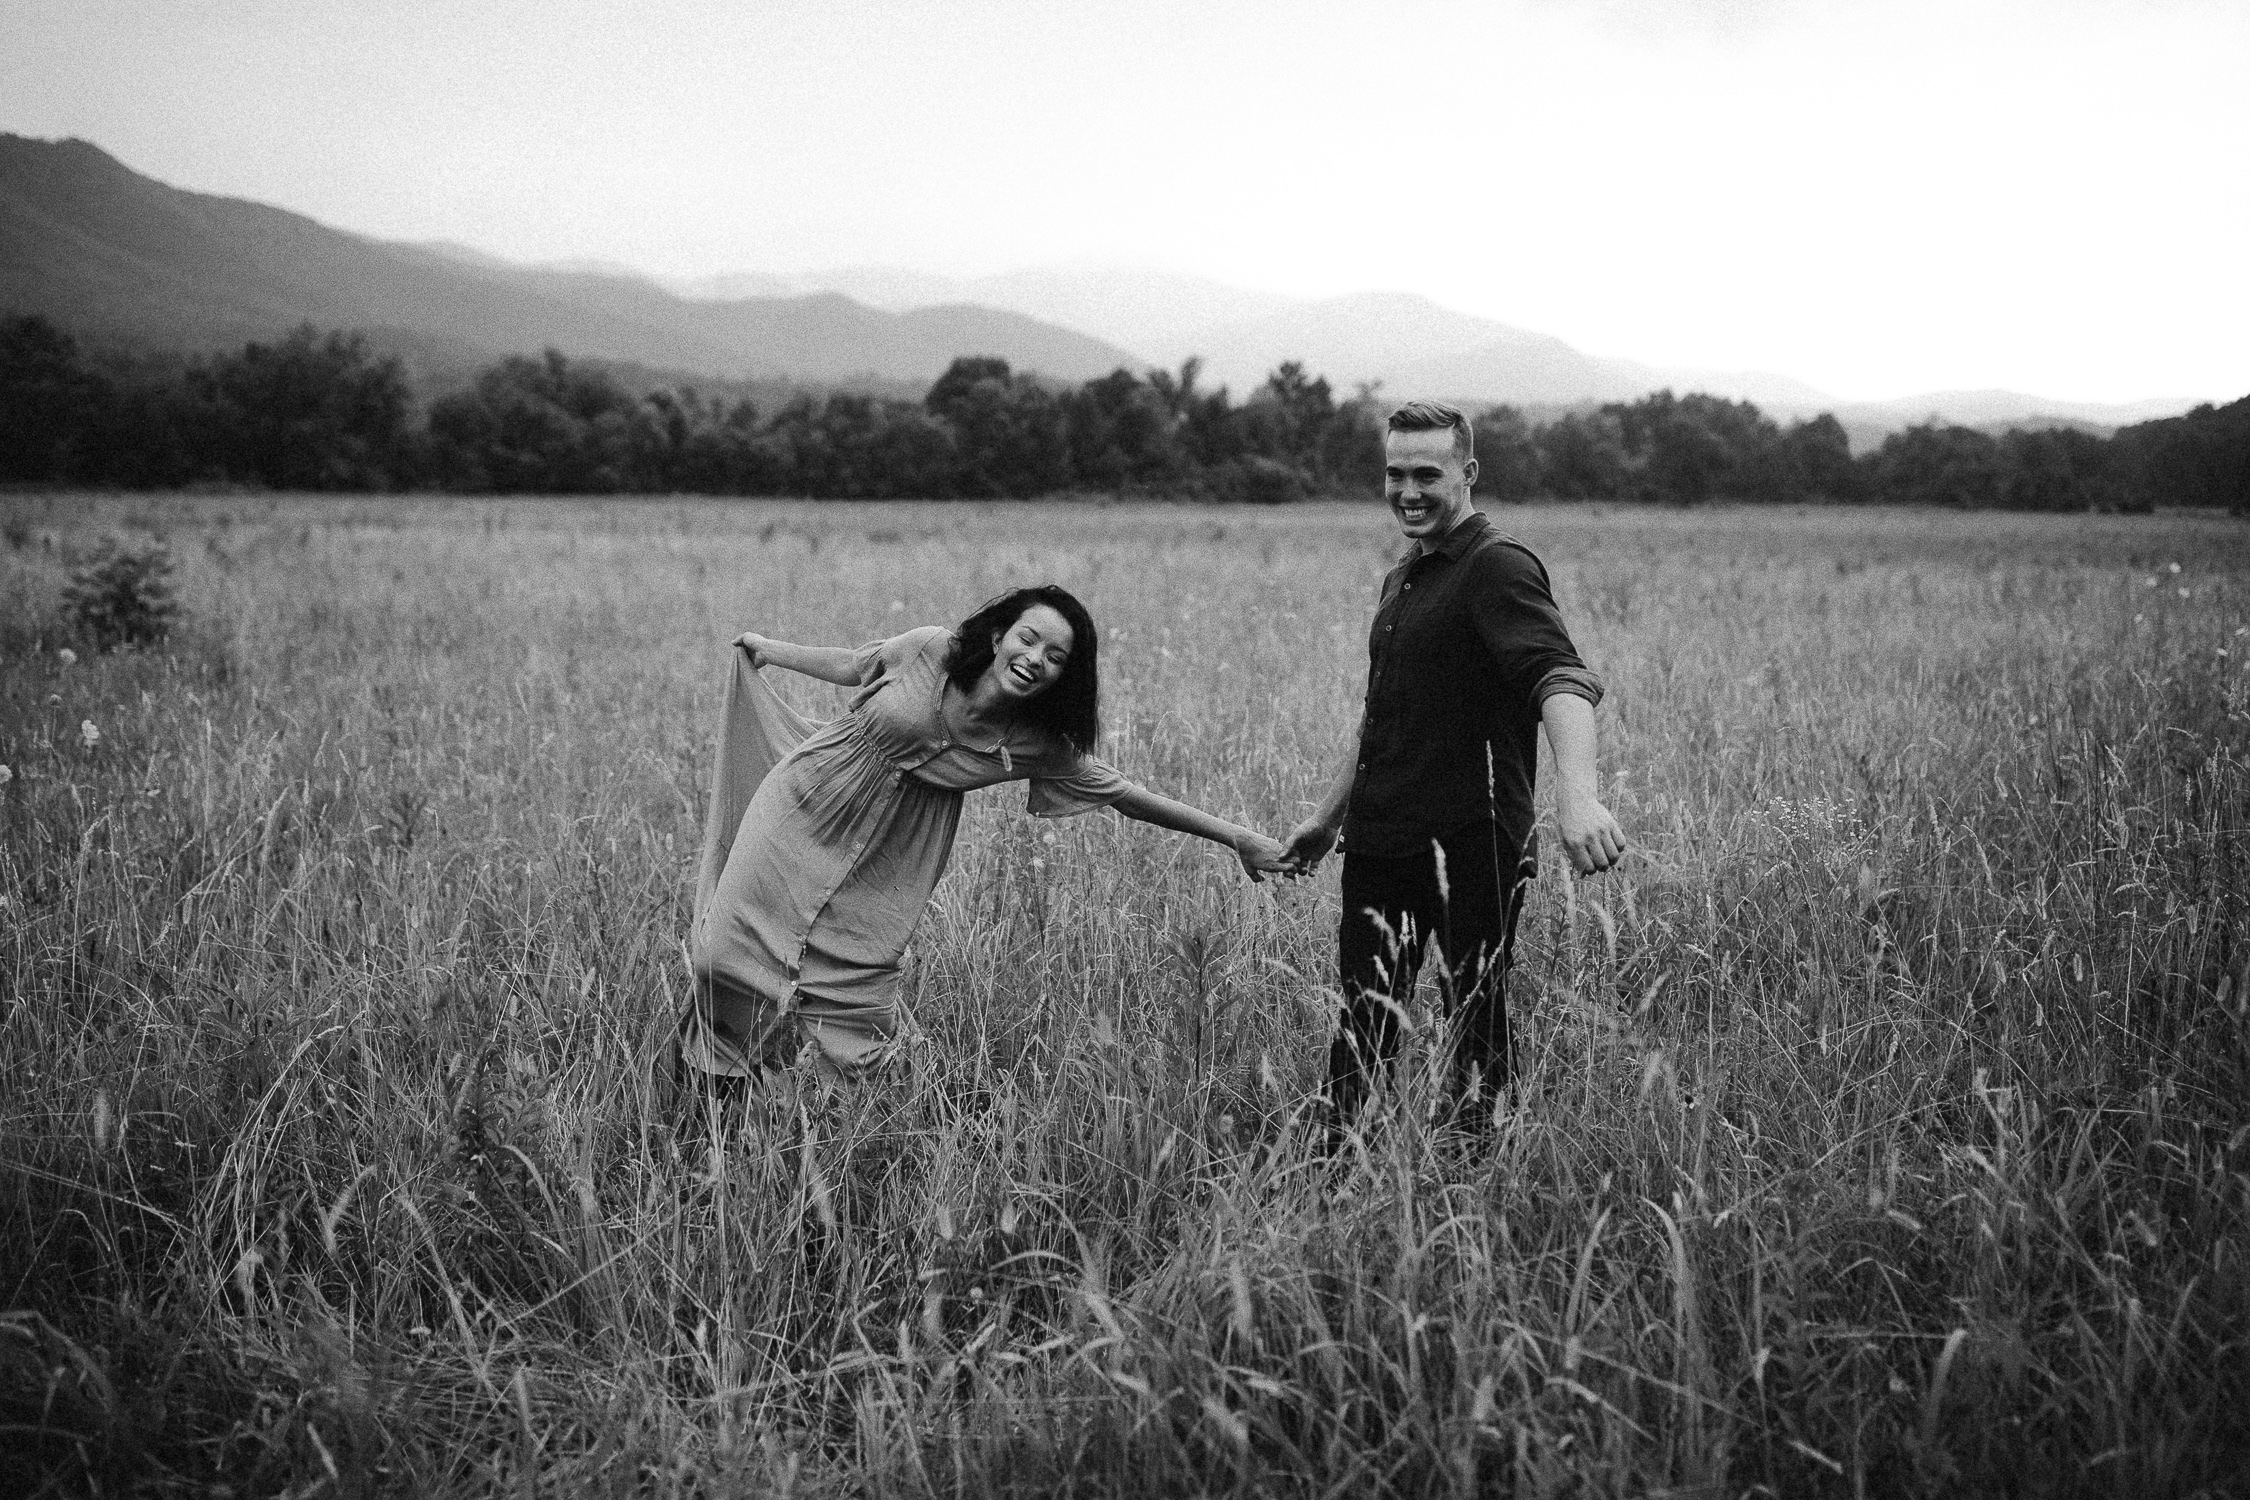 ariannamtorres and isaac engagement session at cades cove smoky mountains elopement-31.jpg